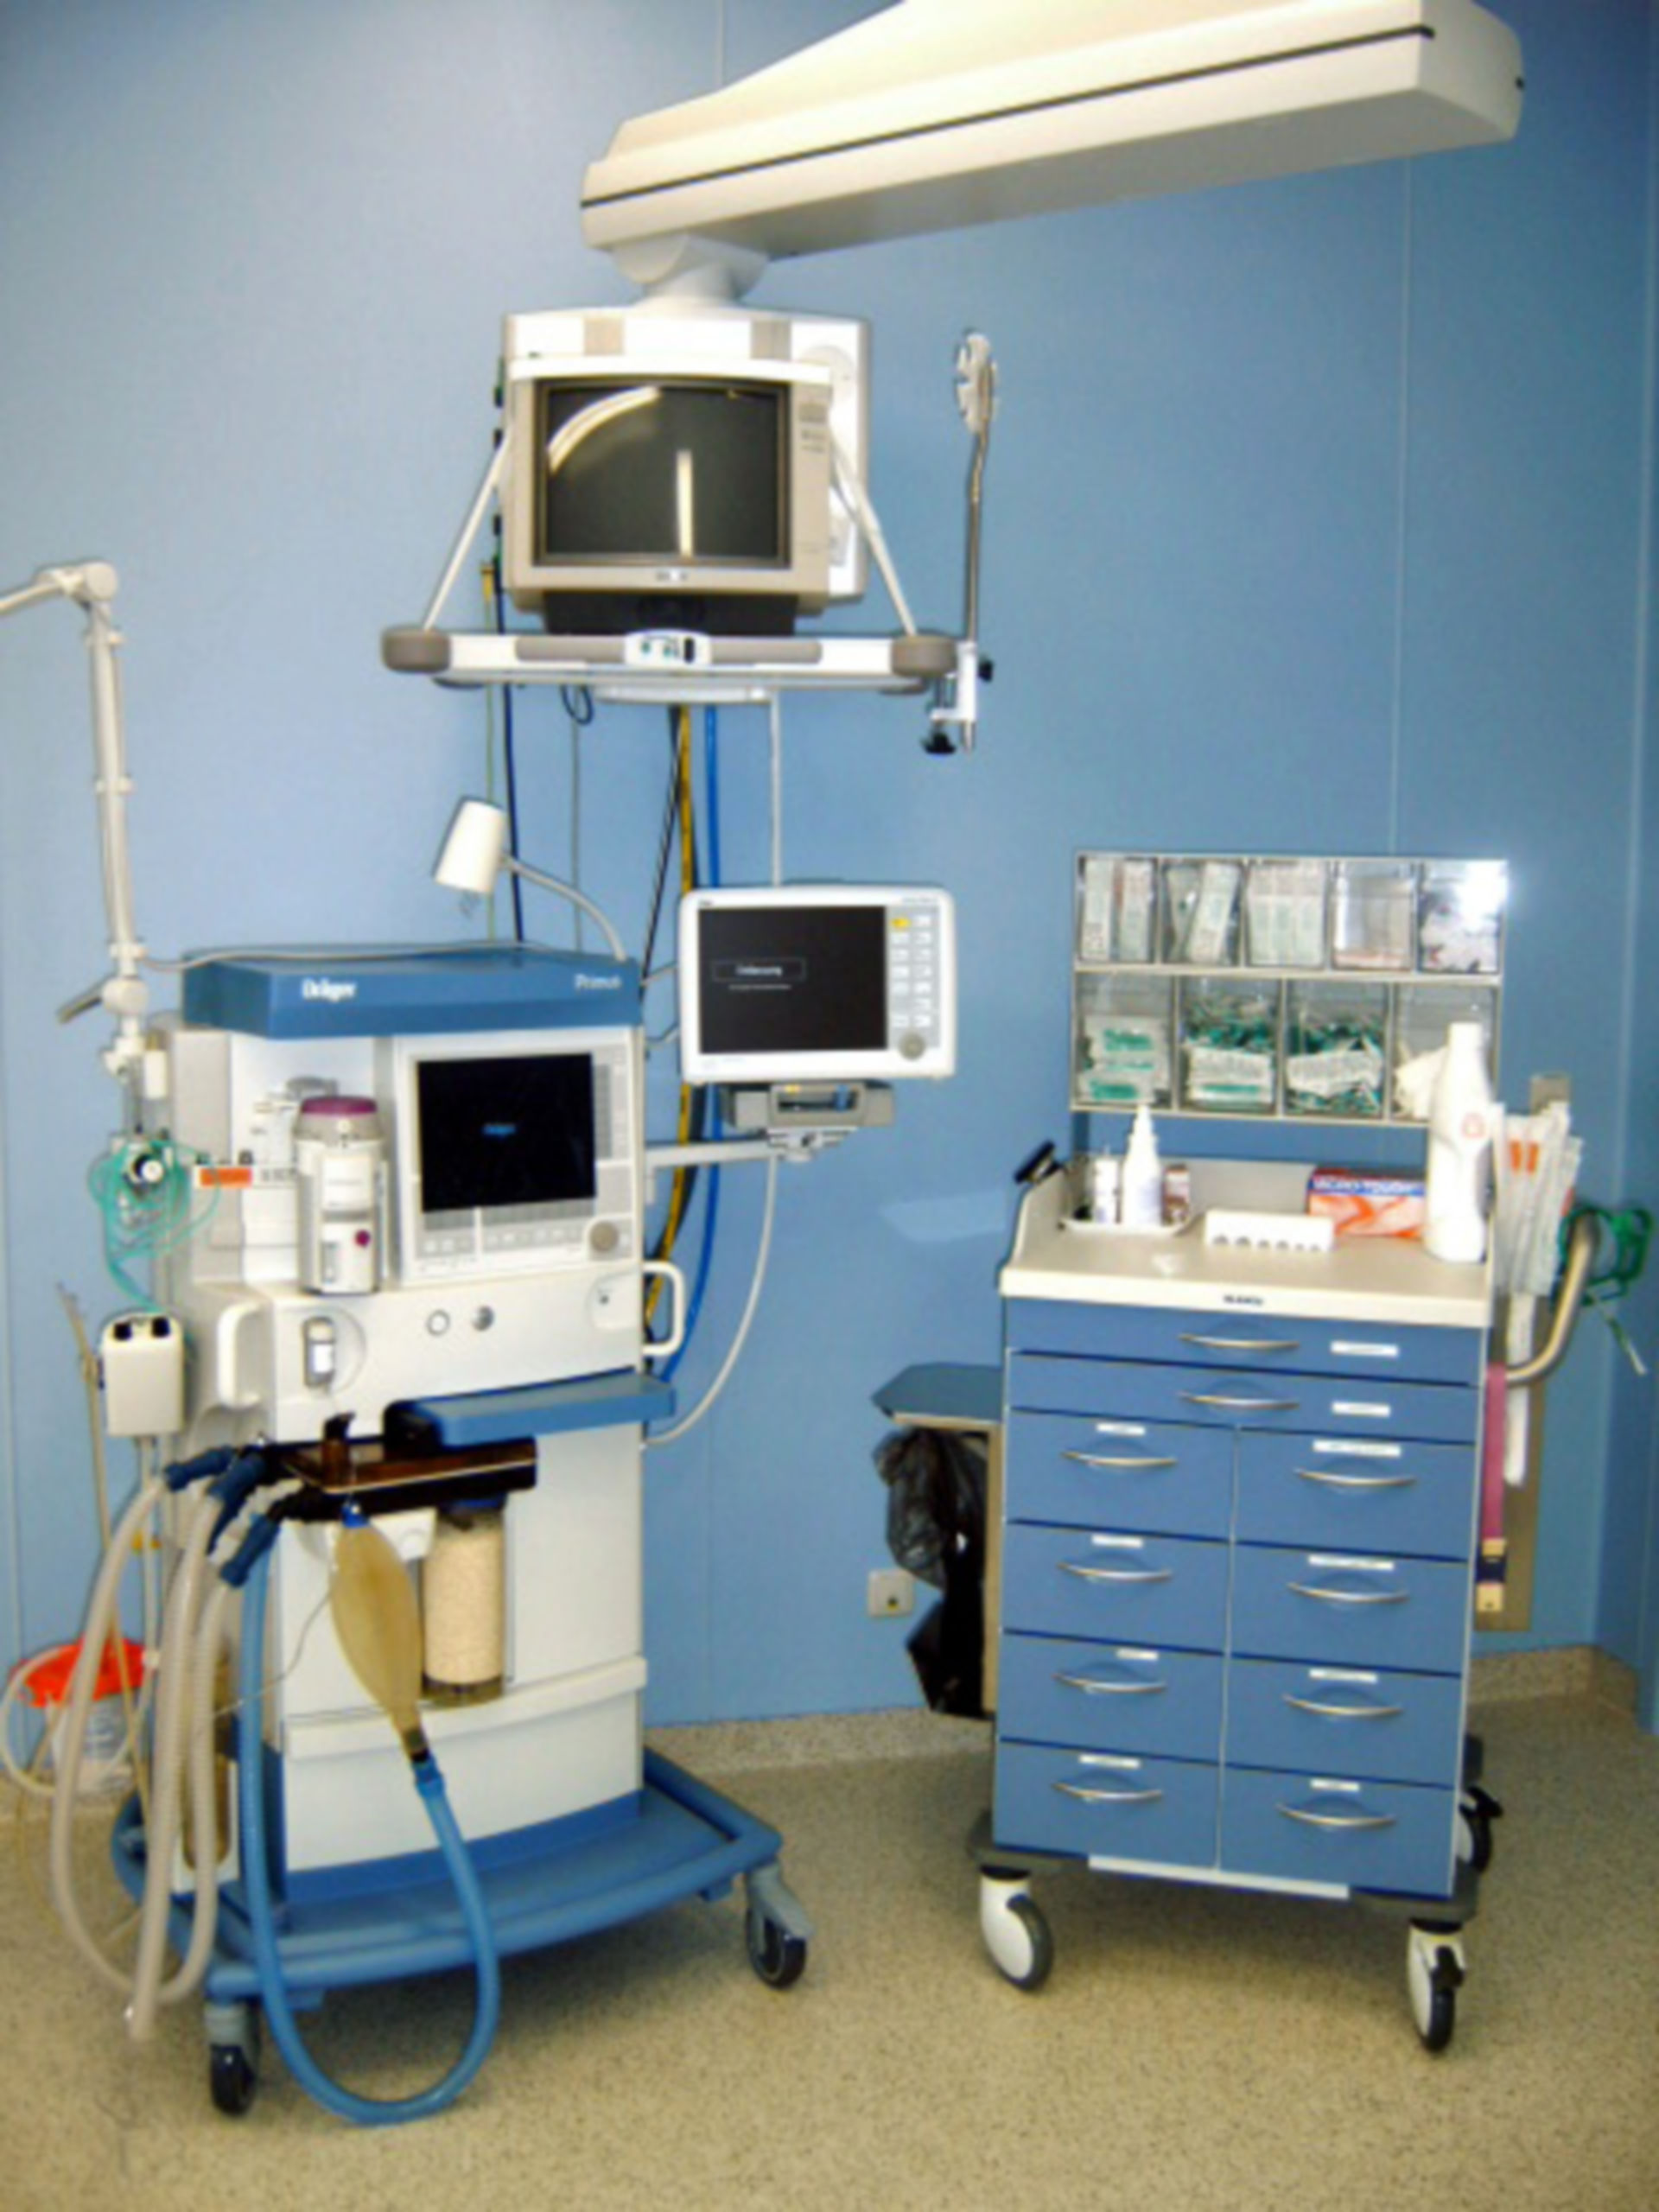 Anesthesiological workstation